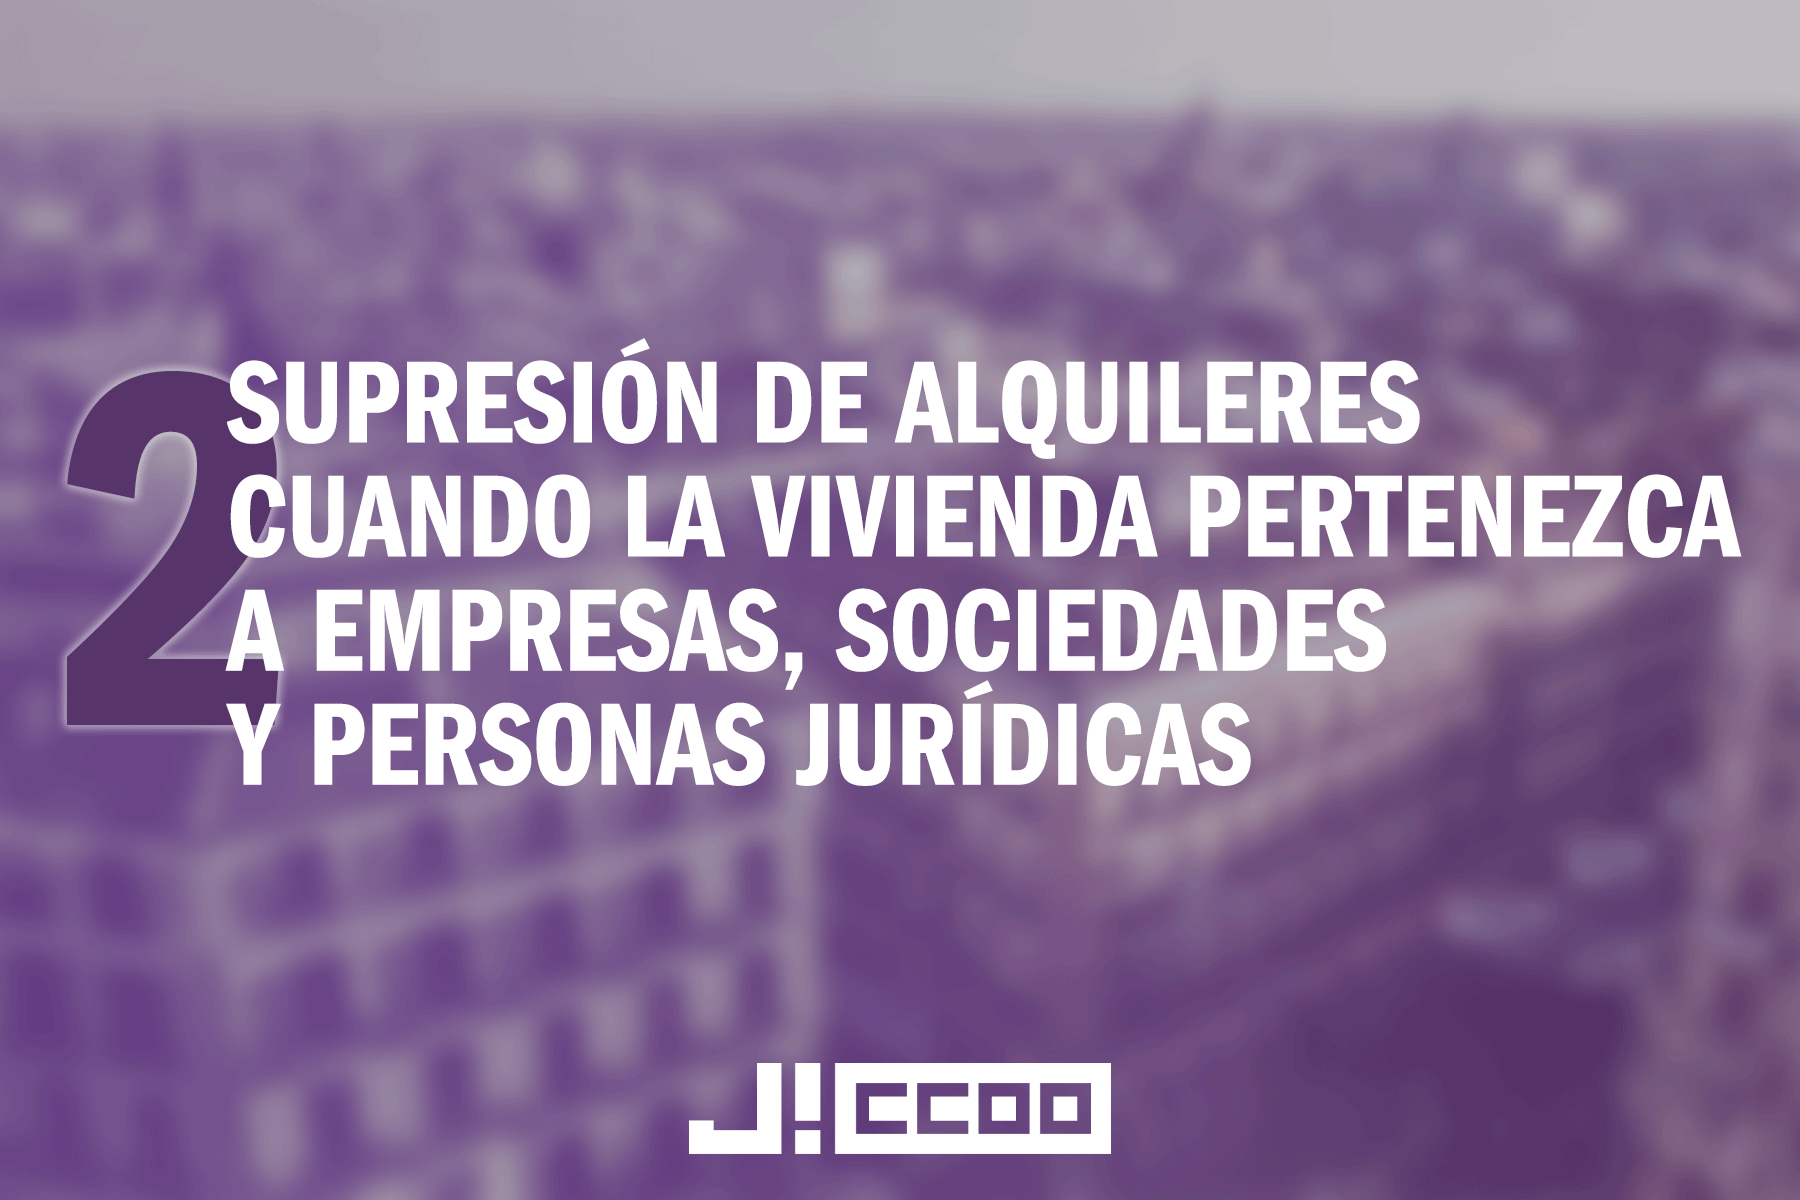 3-jccoo-supresion-alquileres